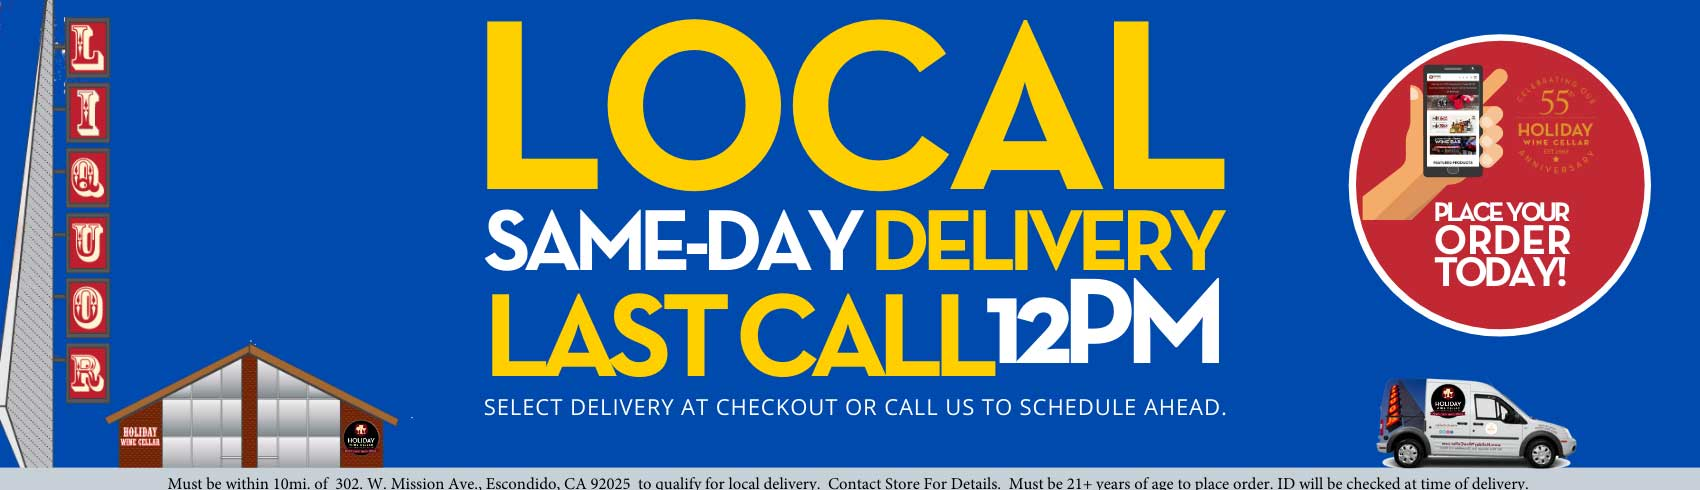 local-delivery-12pm-cutoff-same-day-delivery-v2.png